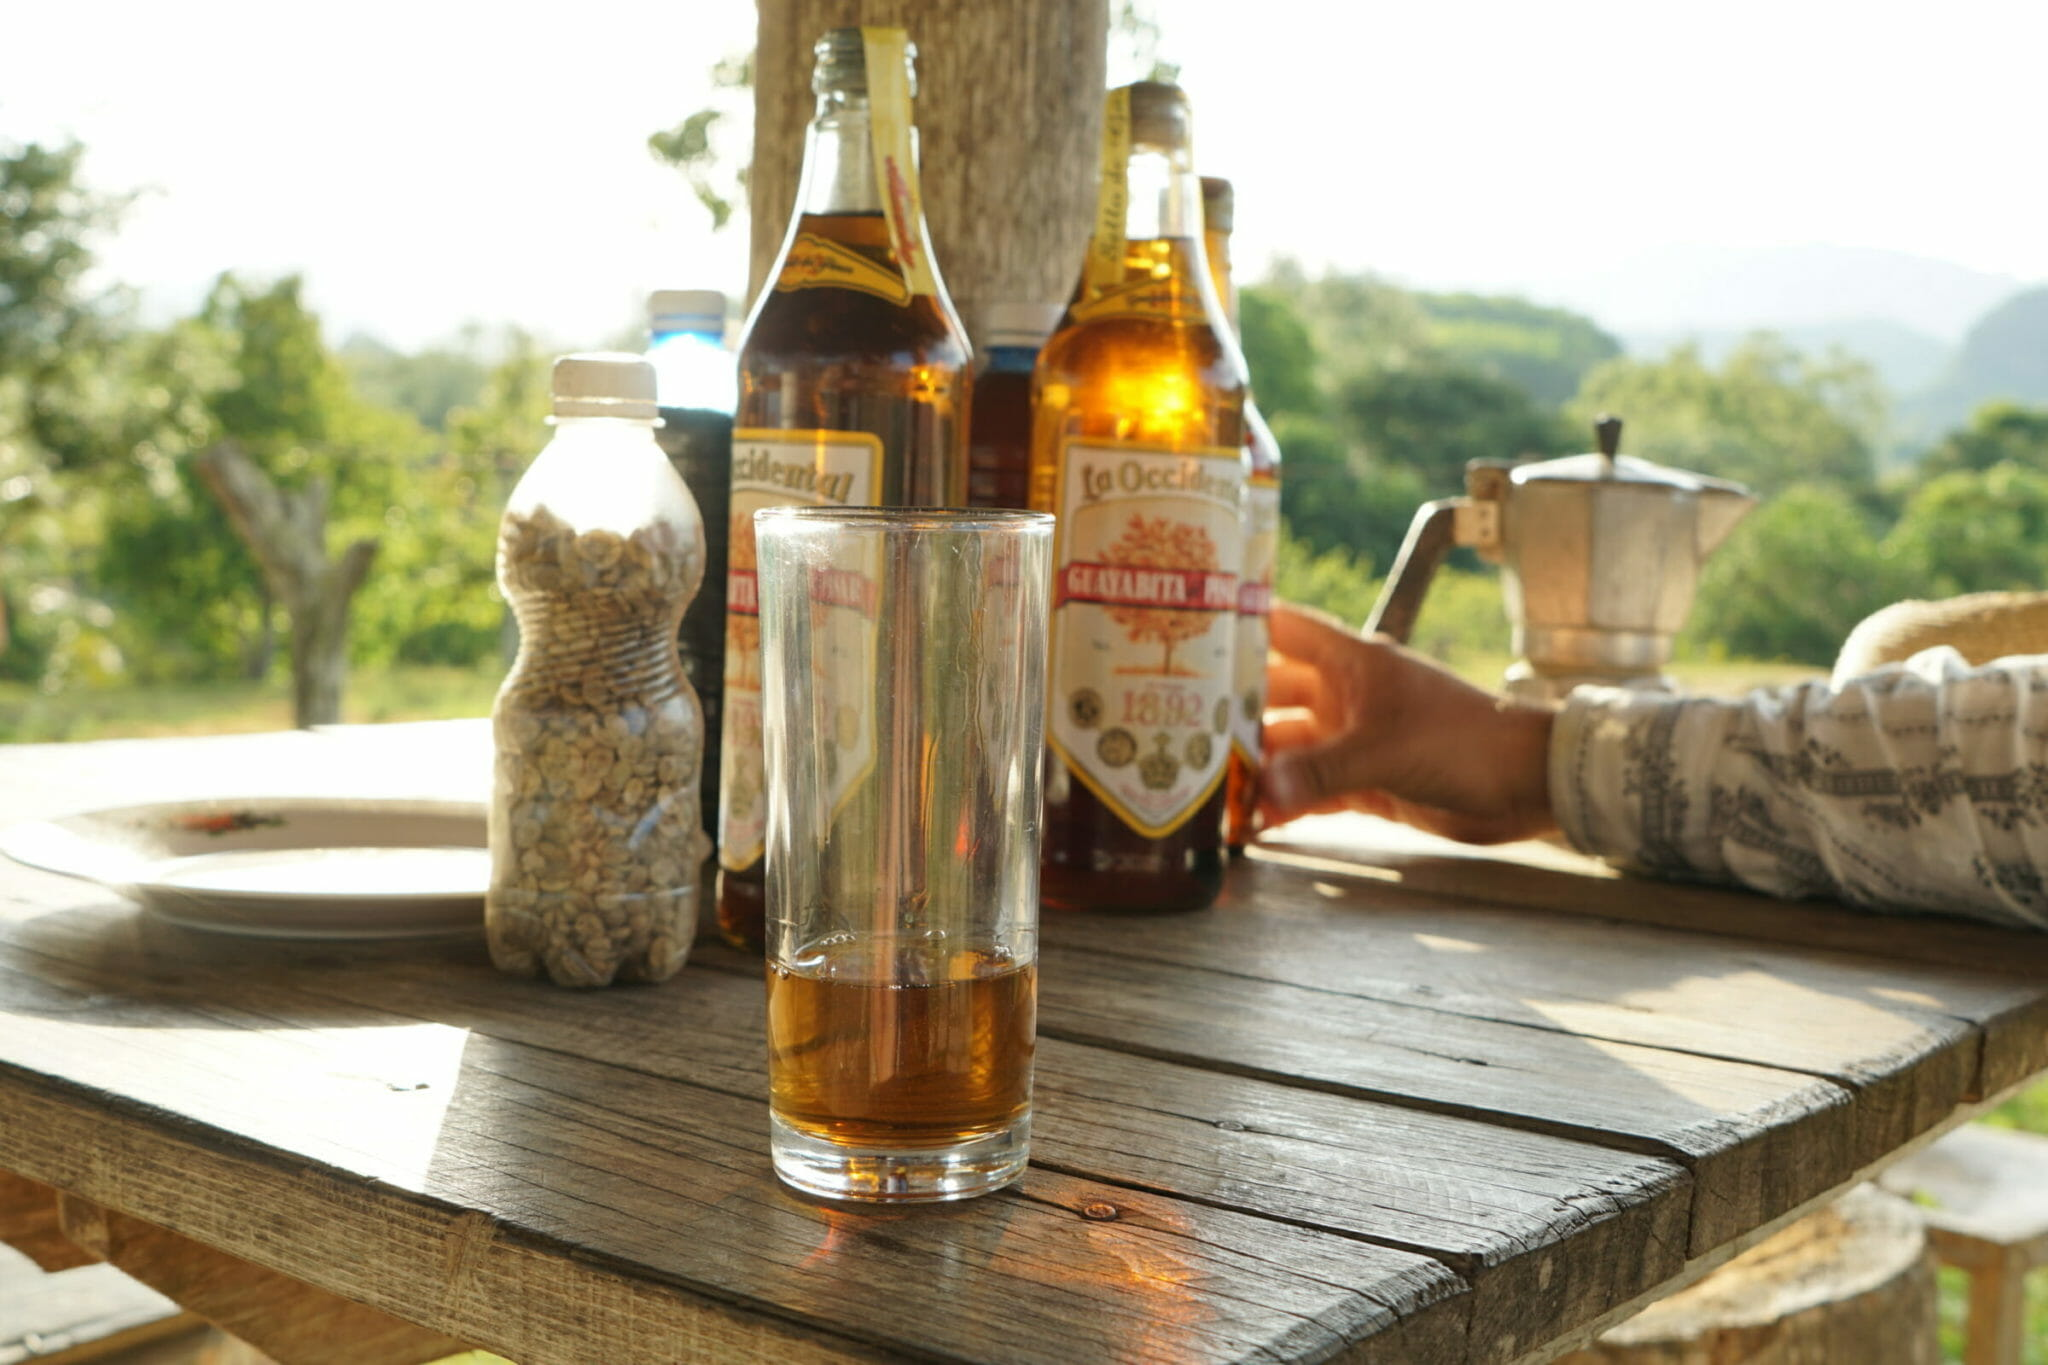 Bottles and glass of rum on table